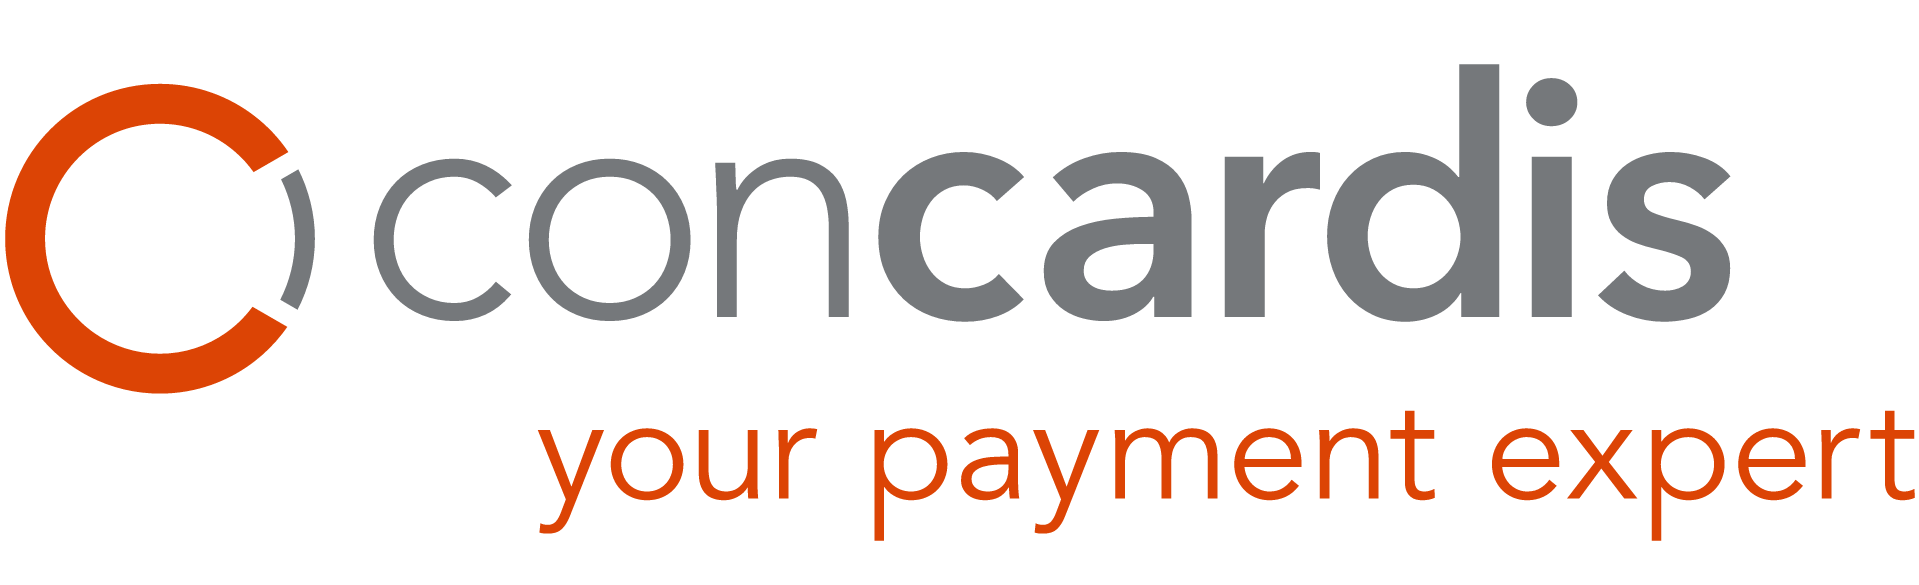 Concardis GmbH - your payment expert!